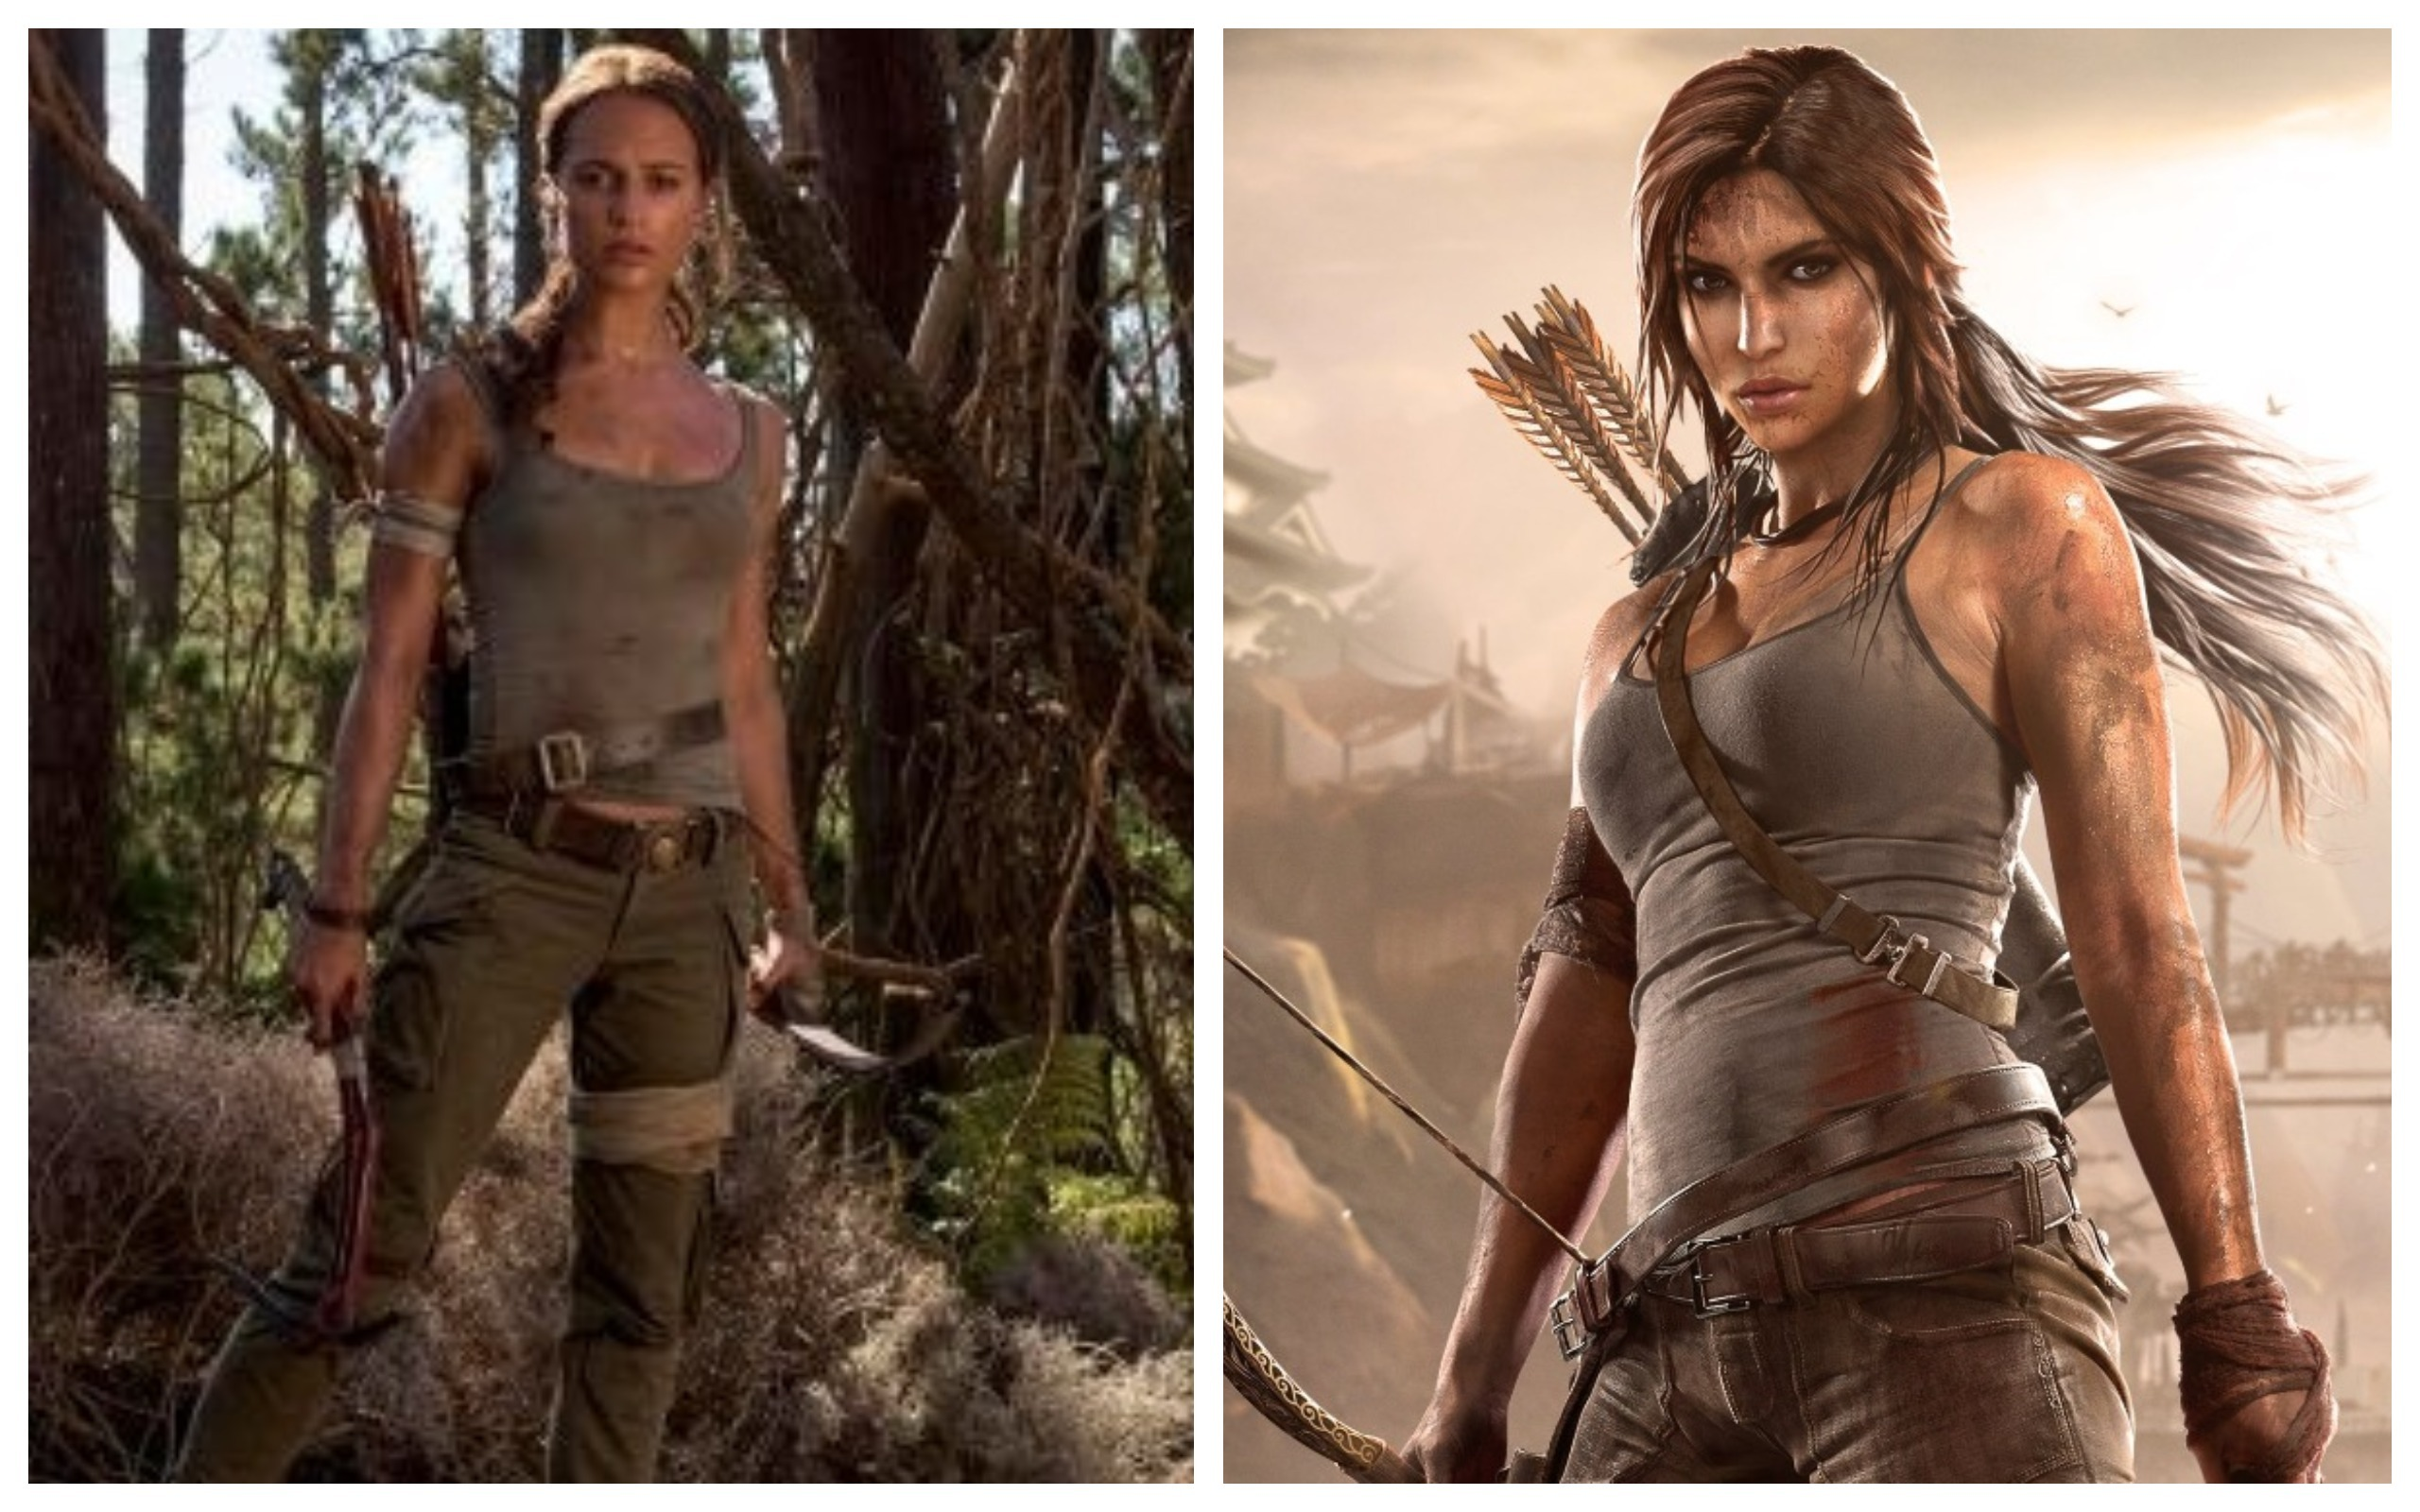 And the new Lara Croft is